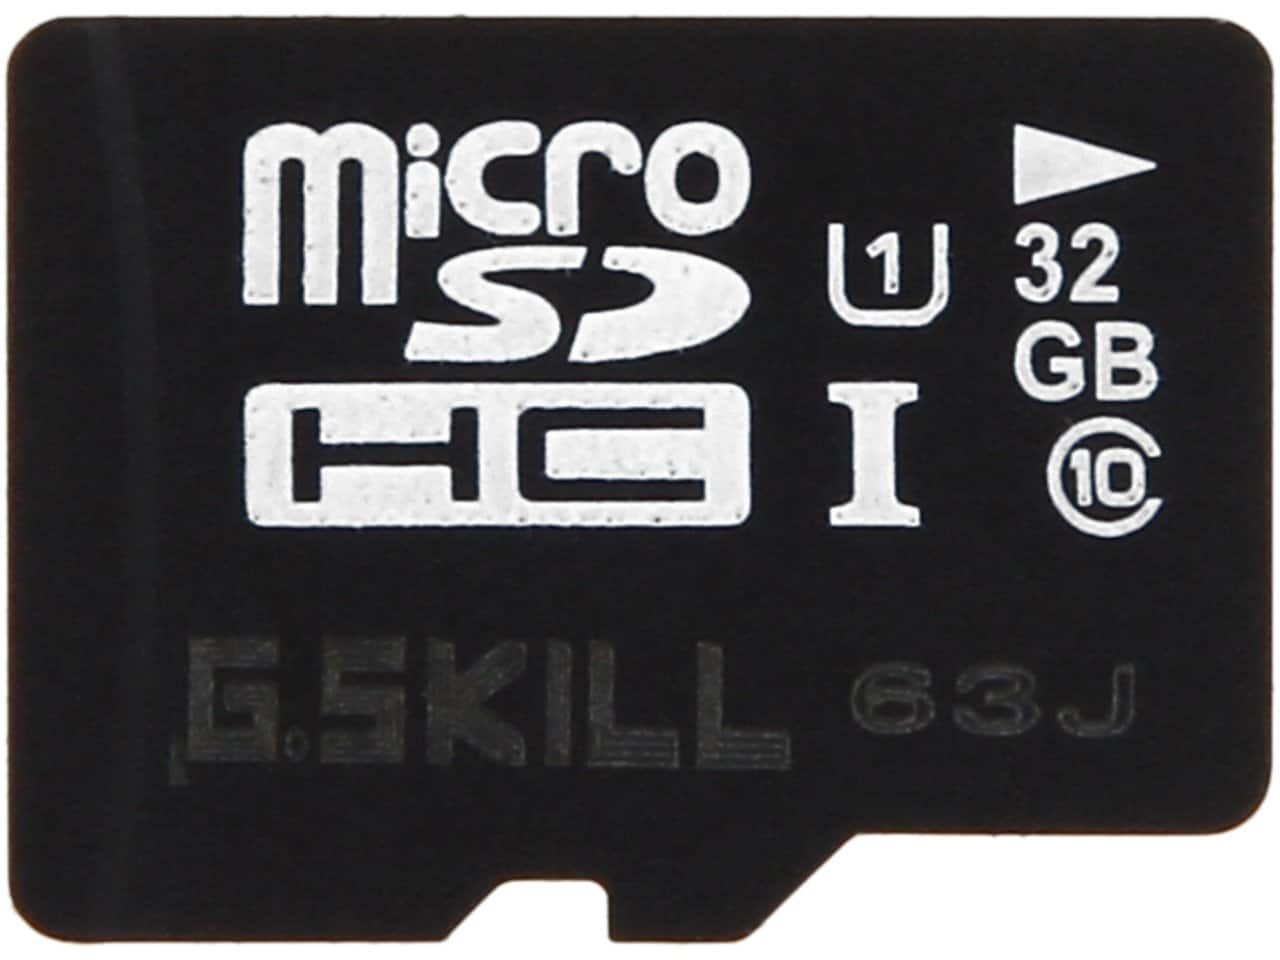 32 GB G.SKILL Class 10 UHS-1 microSDHC Flash Card or 32 GB ADATA DashDrive UV128 Black & Blue USB 3.0 Flash Drive for $6.99 AC + S&H @ Newegg.com